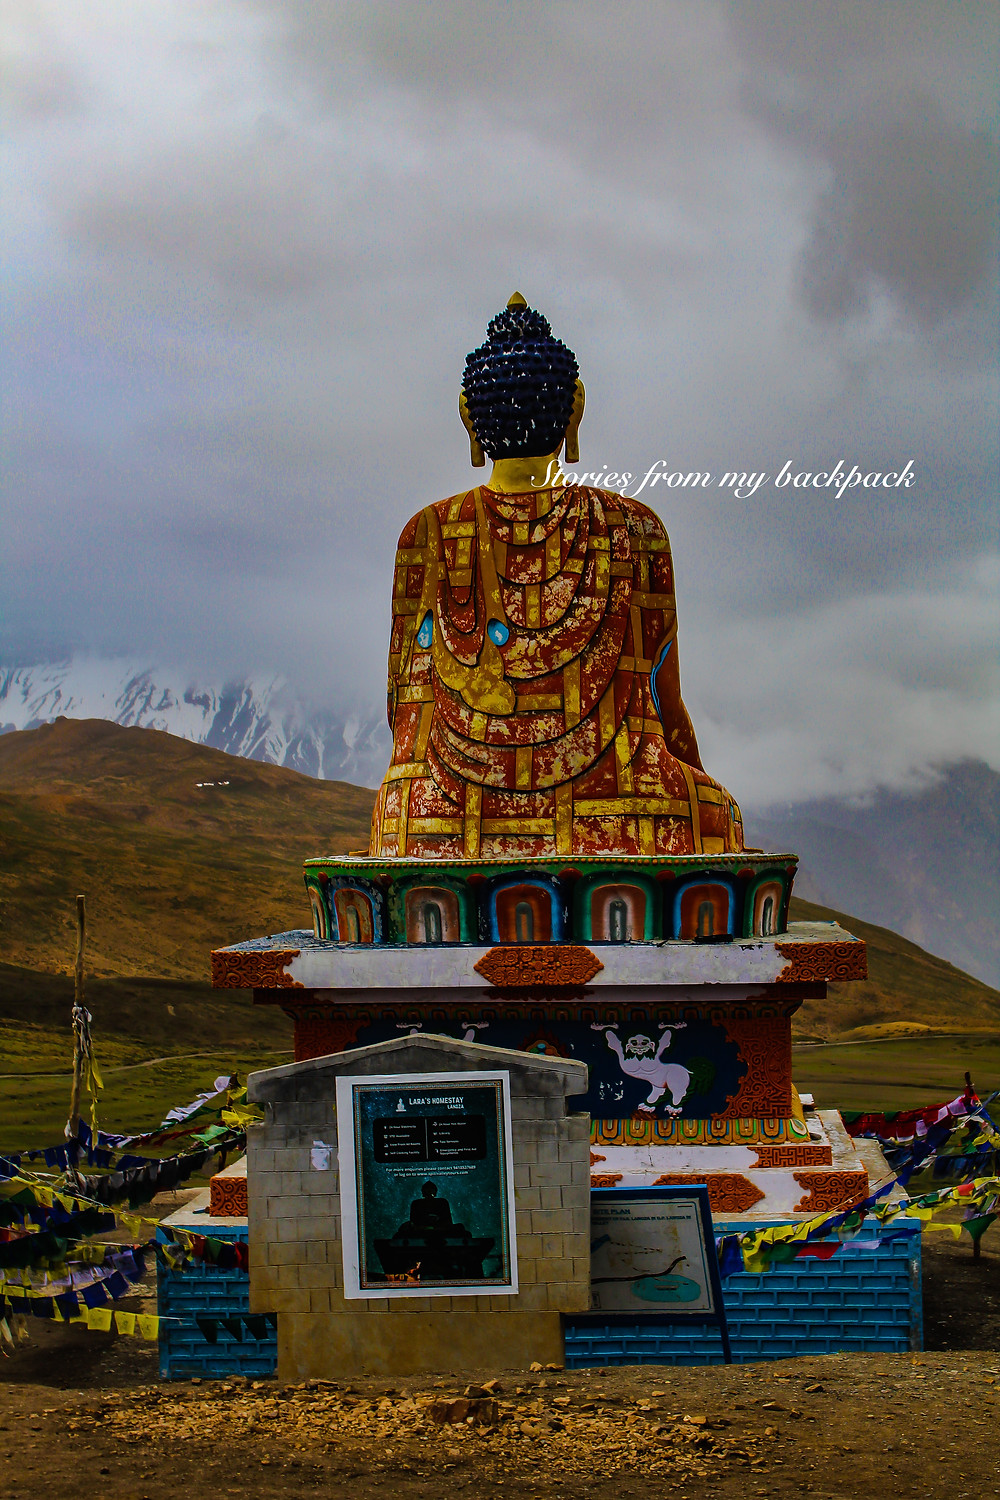 Buddha statue in Langza, Buddha statue in Spiti, things to do in spiti, Lanza accommodation, homestay in spiti, homestay in Lanza